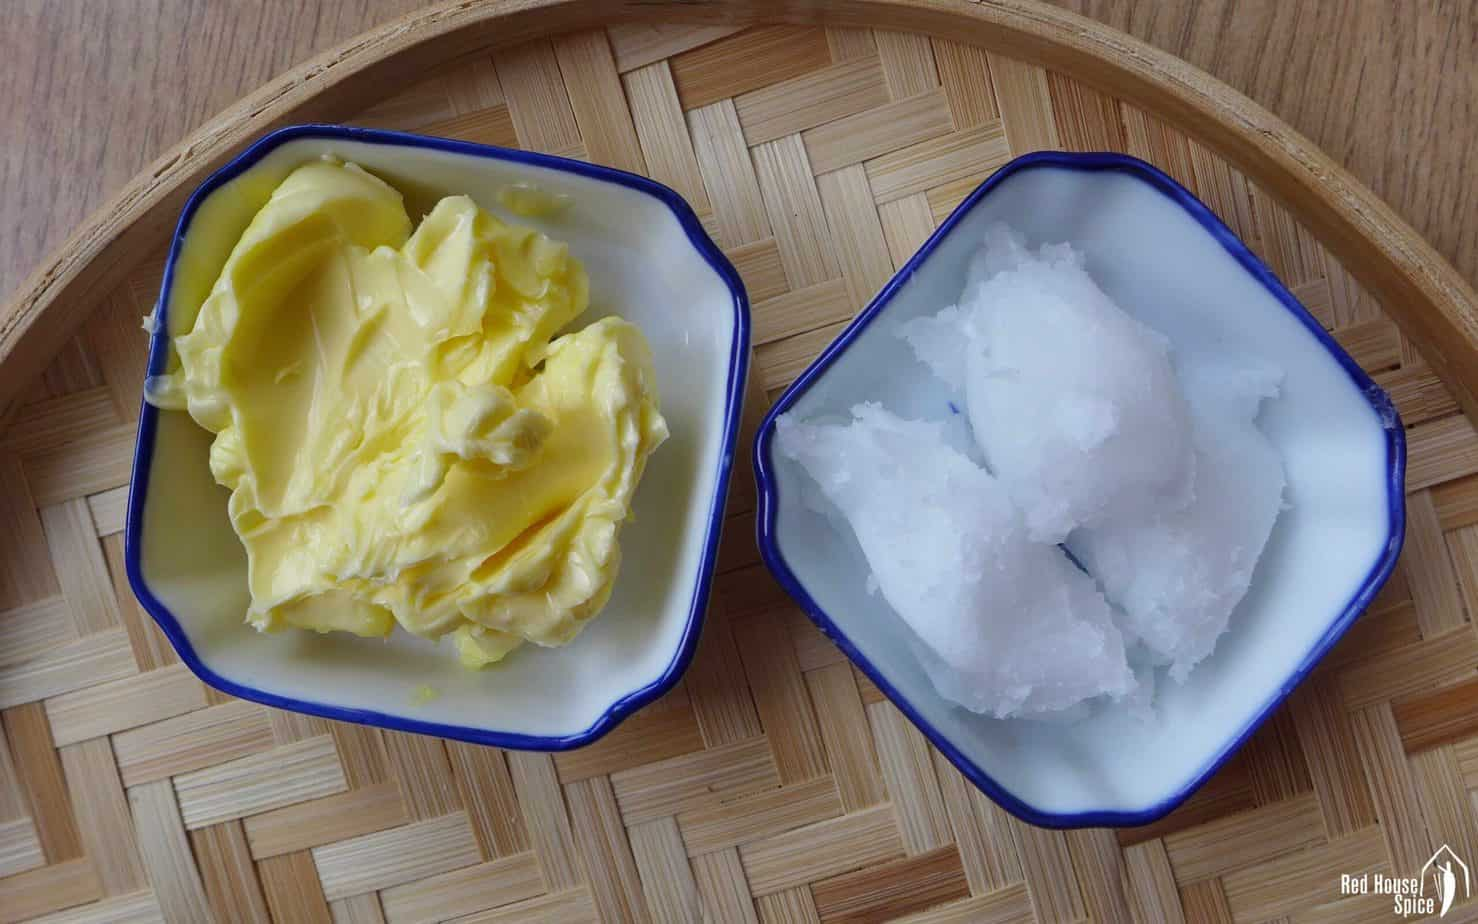 butter and coconut oil